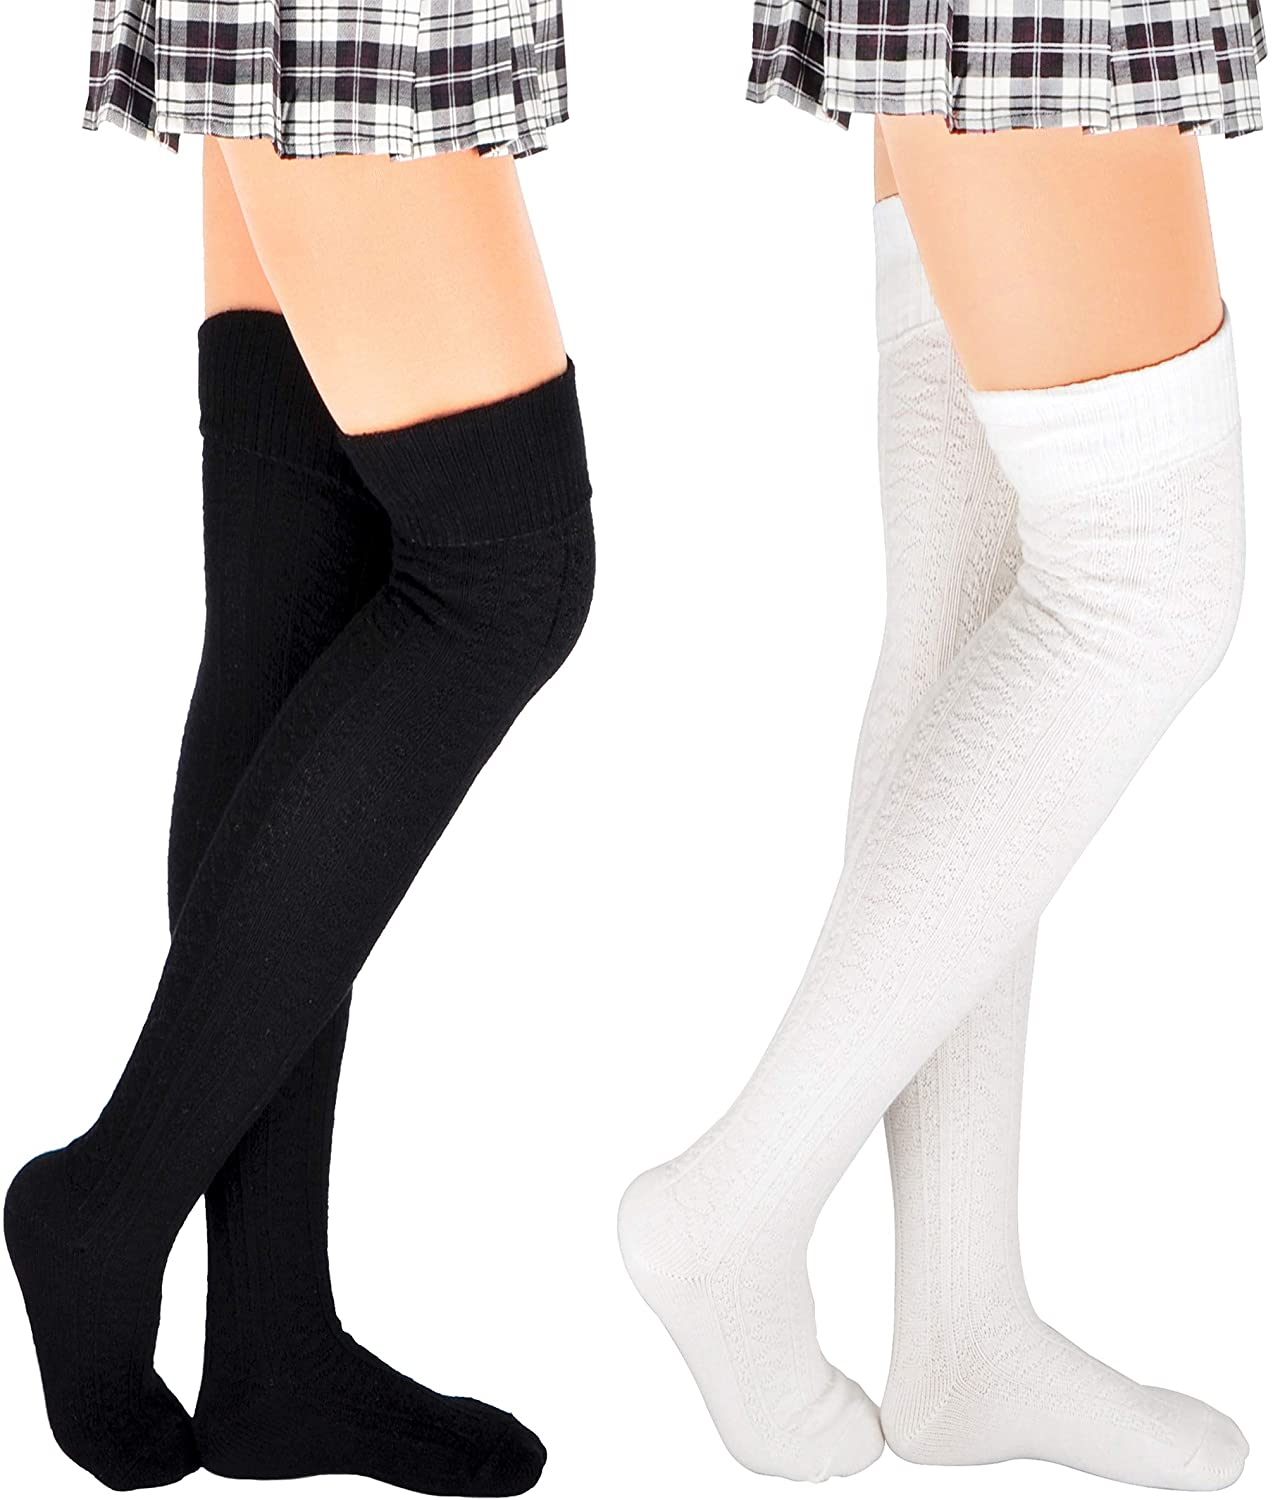 Thigh High Socks for Women Cotton Plus Size Over the Knee Stockings Leg Warmers